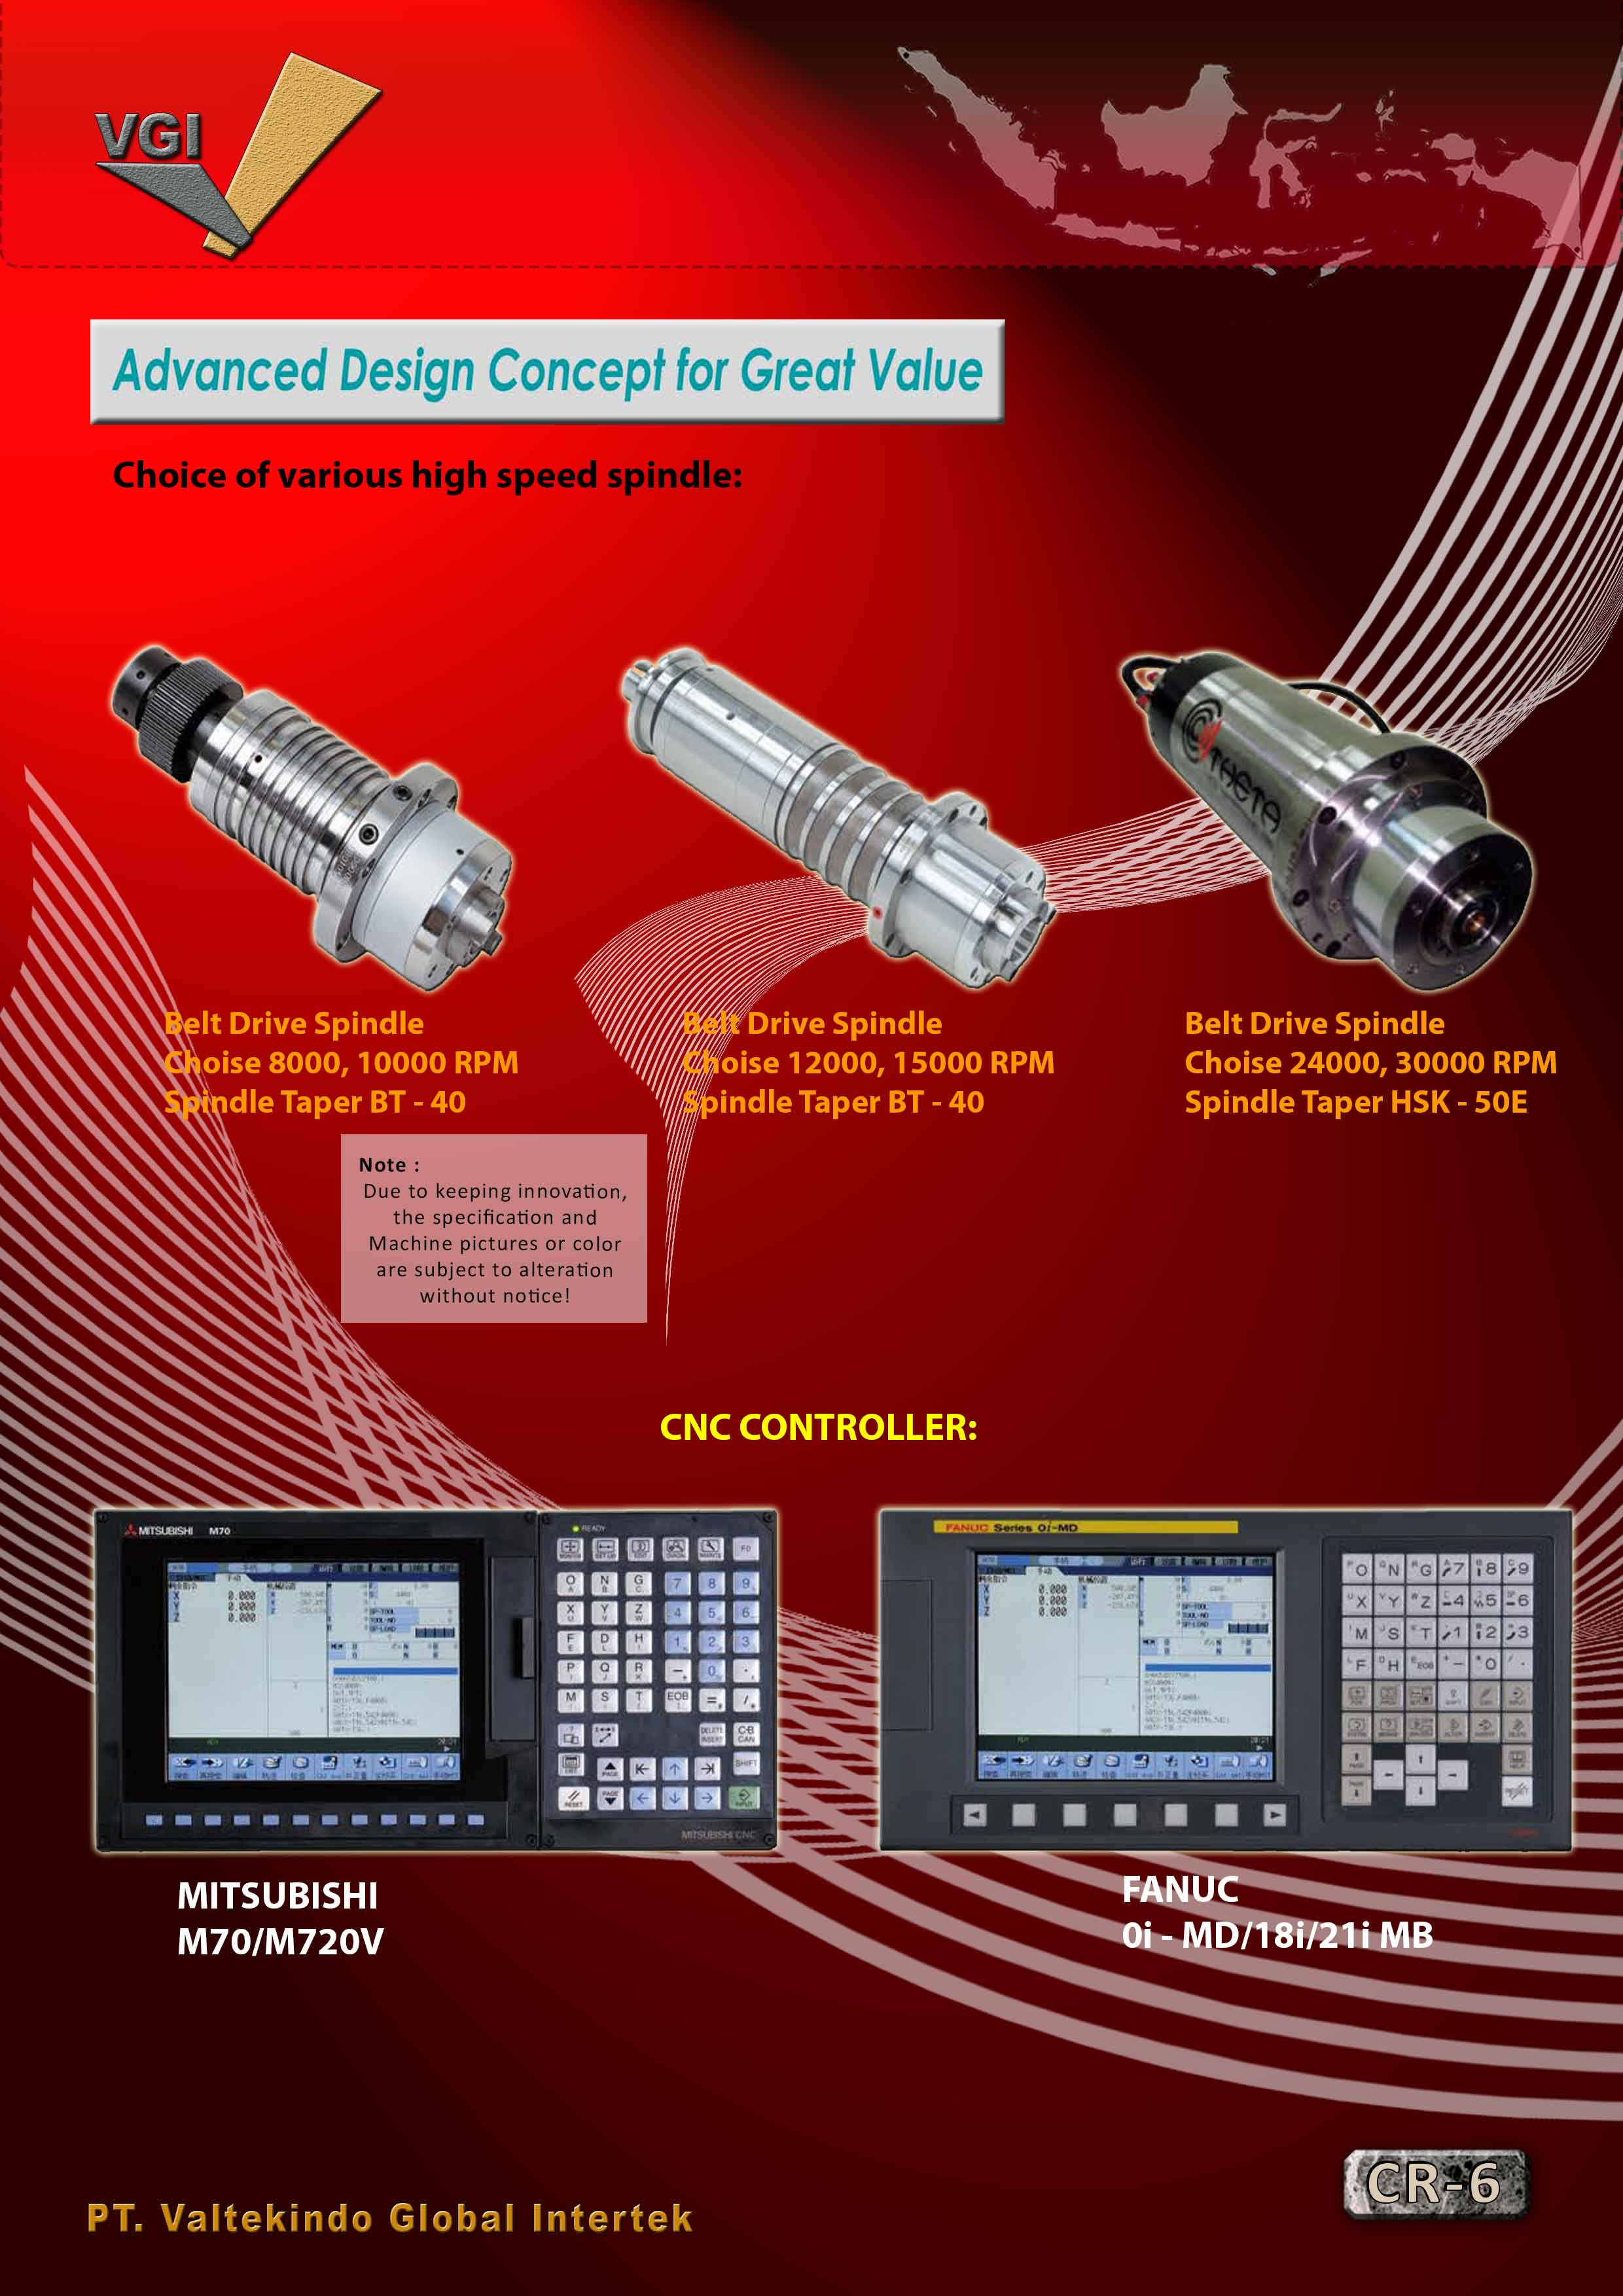 jual mesin Advanced Design Concept for Great Value 4